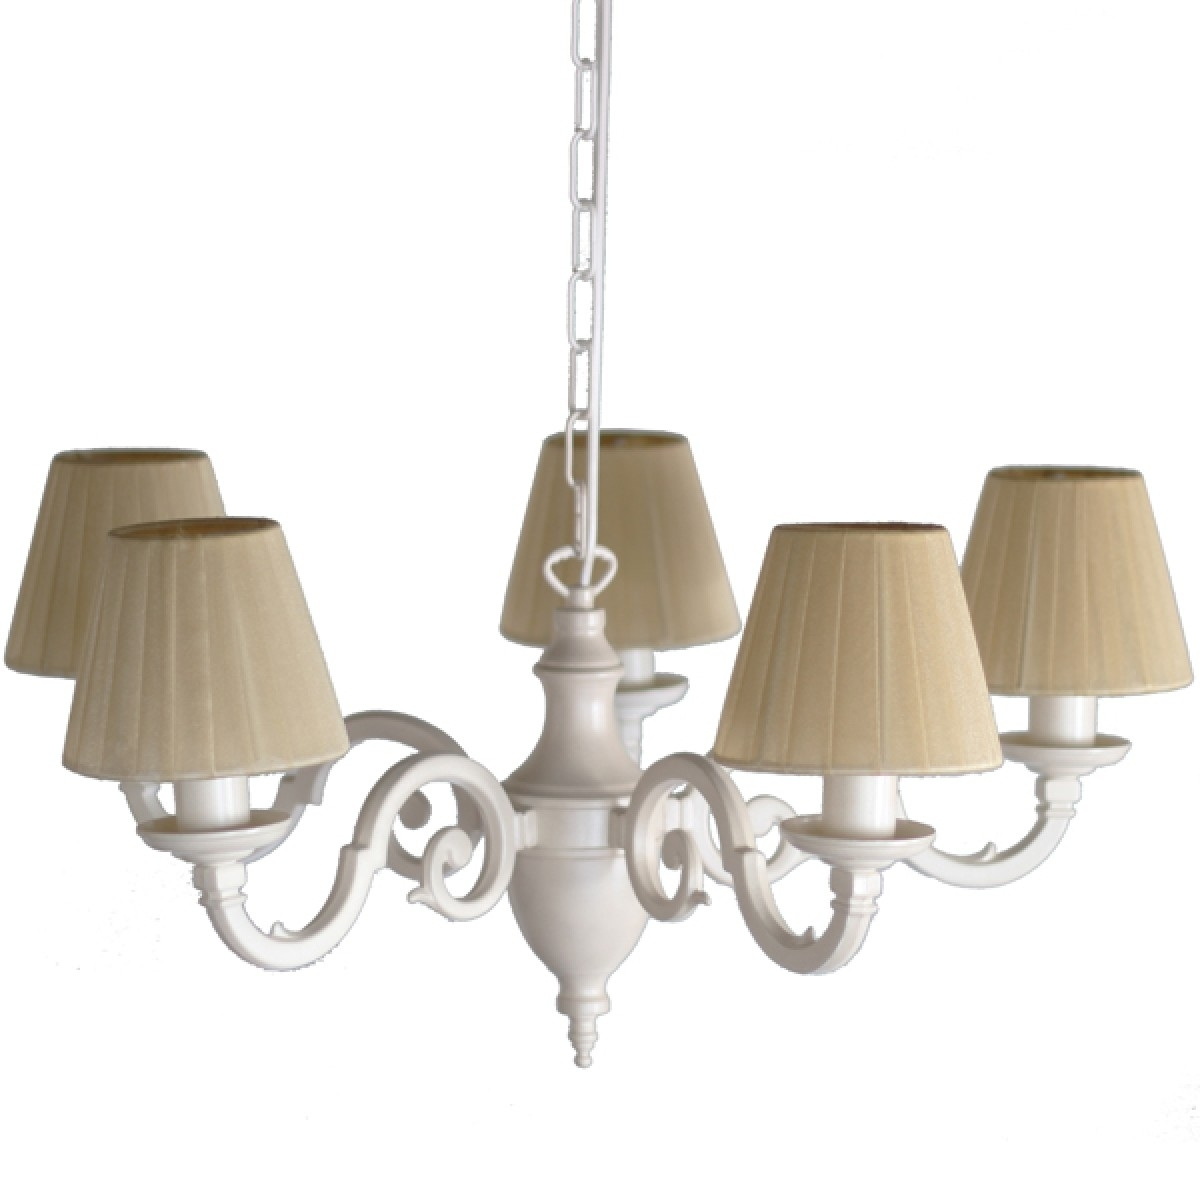 Most Up To Date Bedroom Light Fitting Chandelier With Cream Chandelier Lights (View 11 of 15)